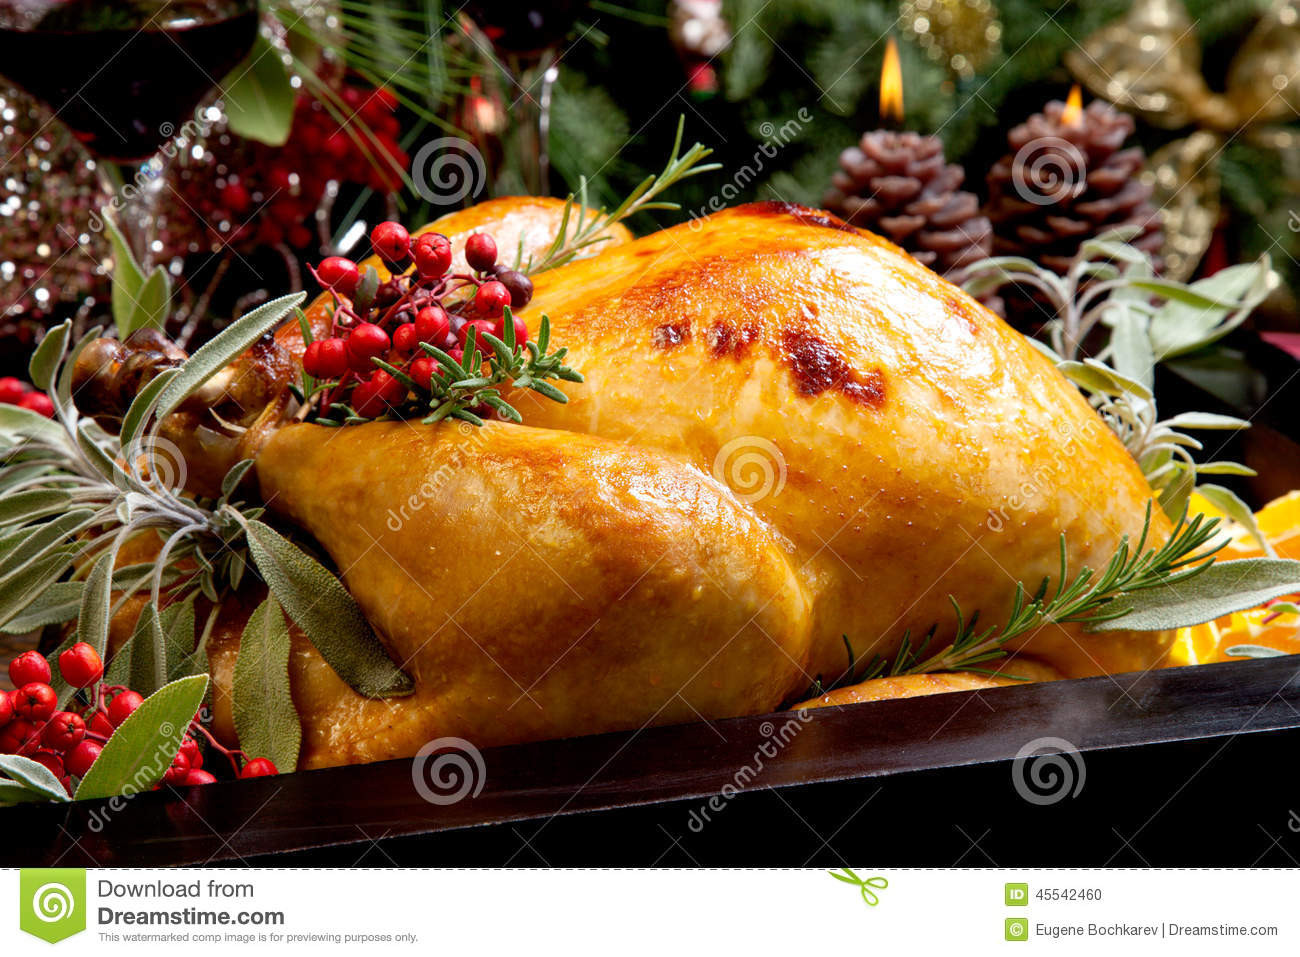 Prepared Christmas Dinners To Go  Christmas Turkey Prepared For Dinner Stock Image